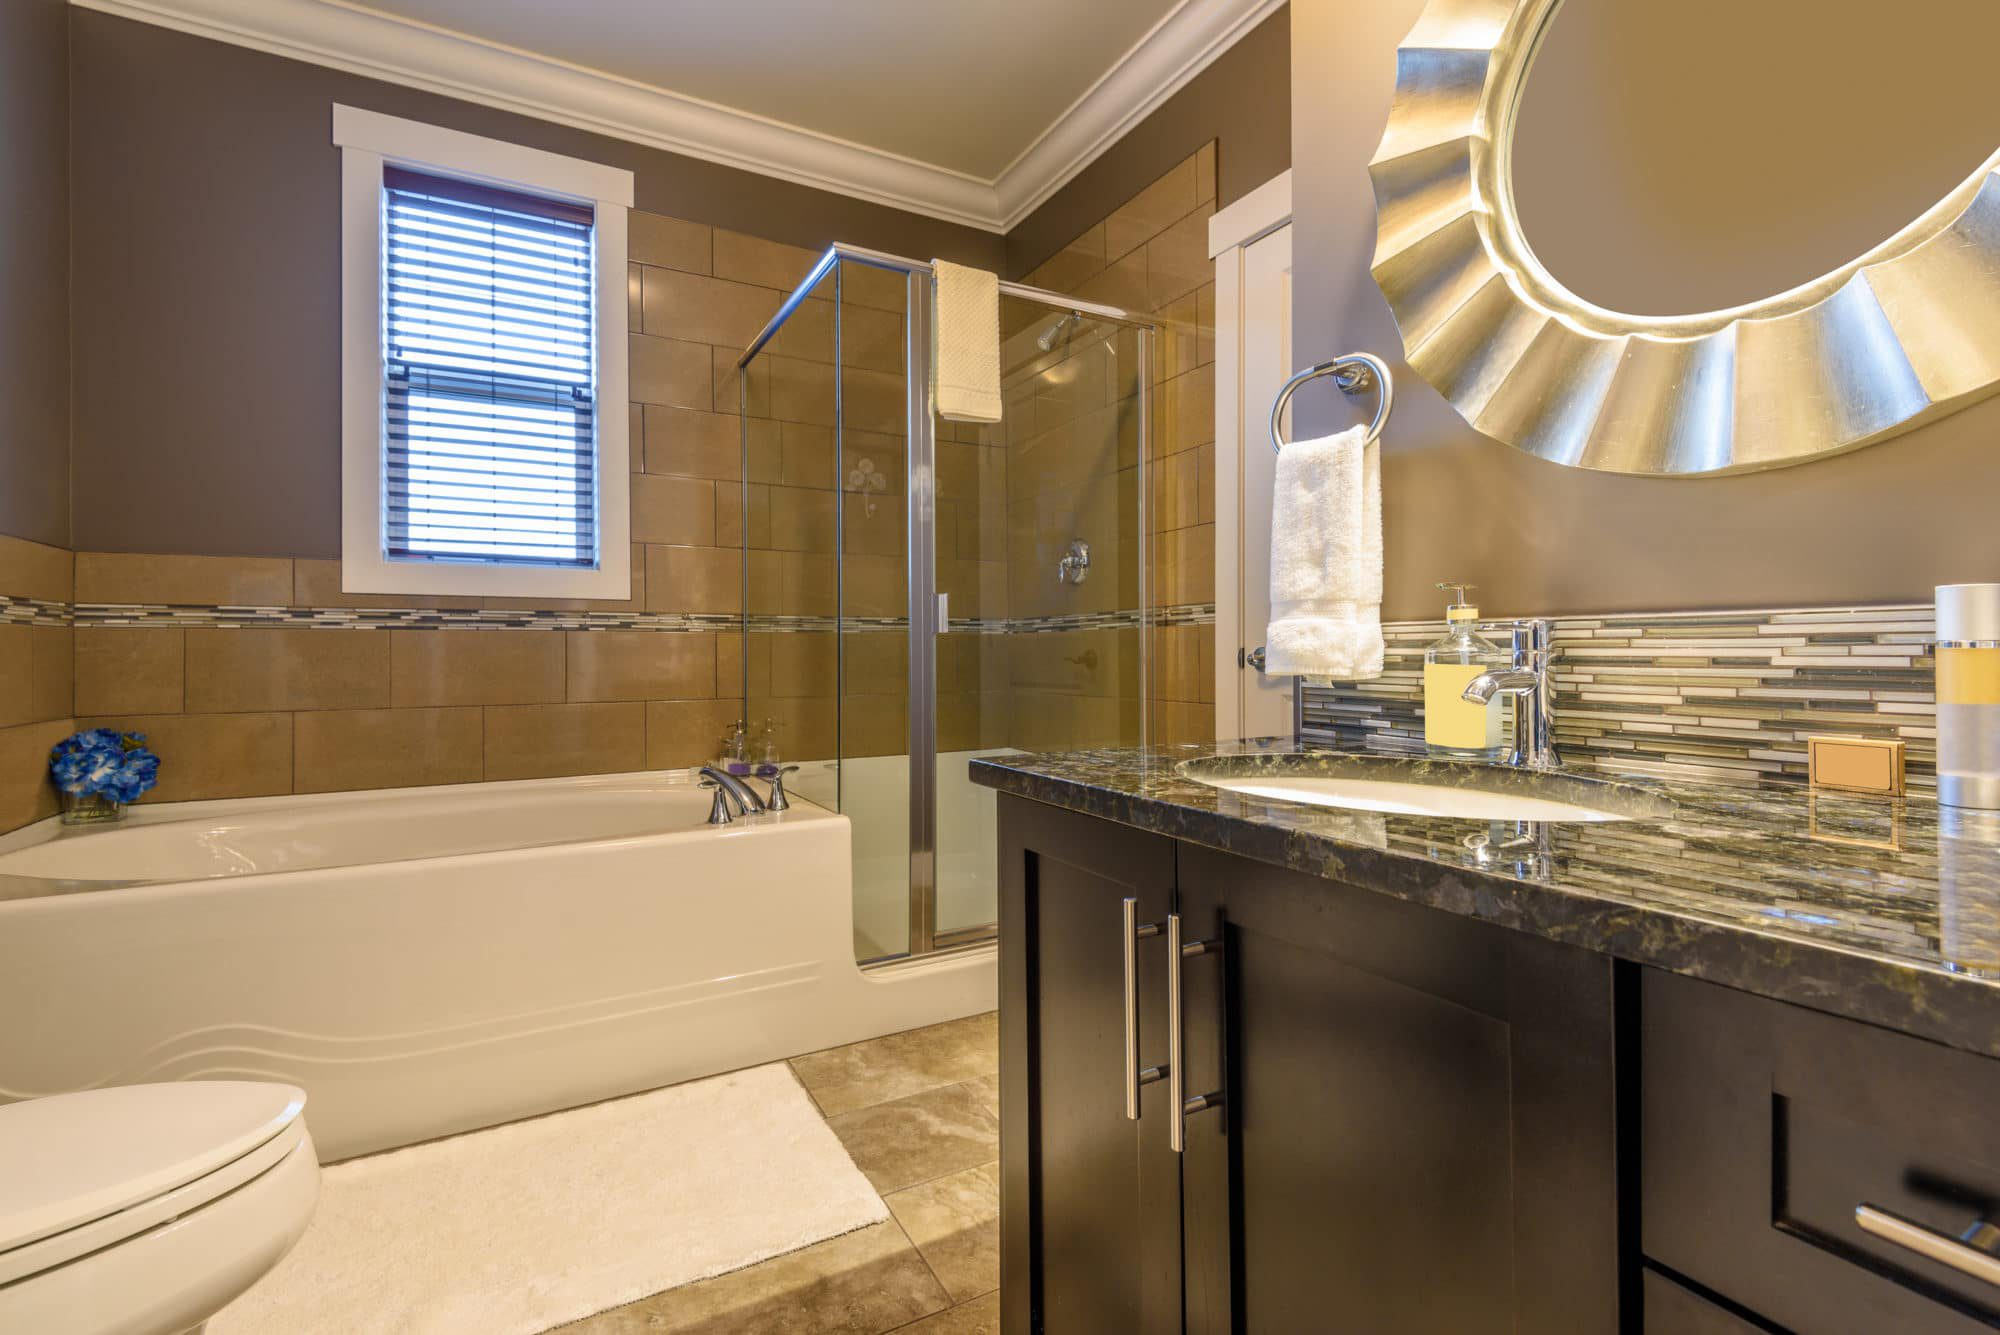 Bathroom Fixtures – Sierra Remodeling